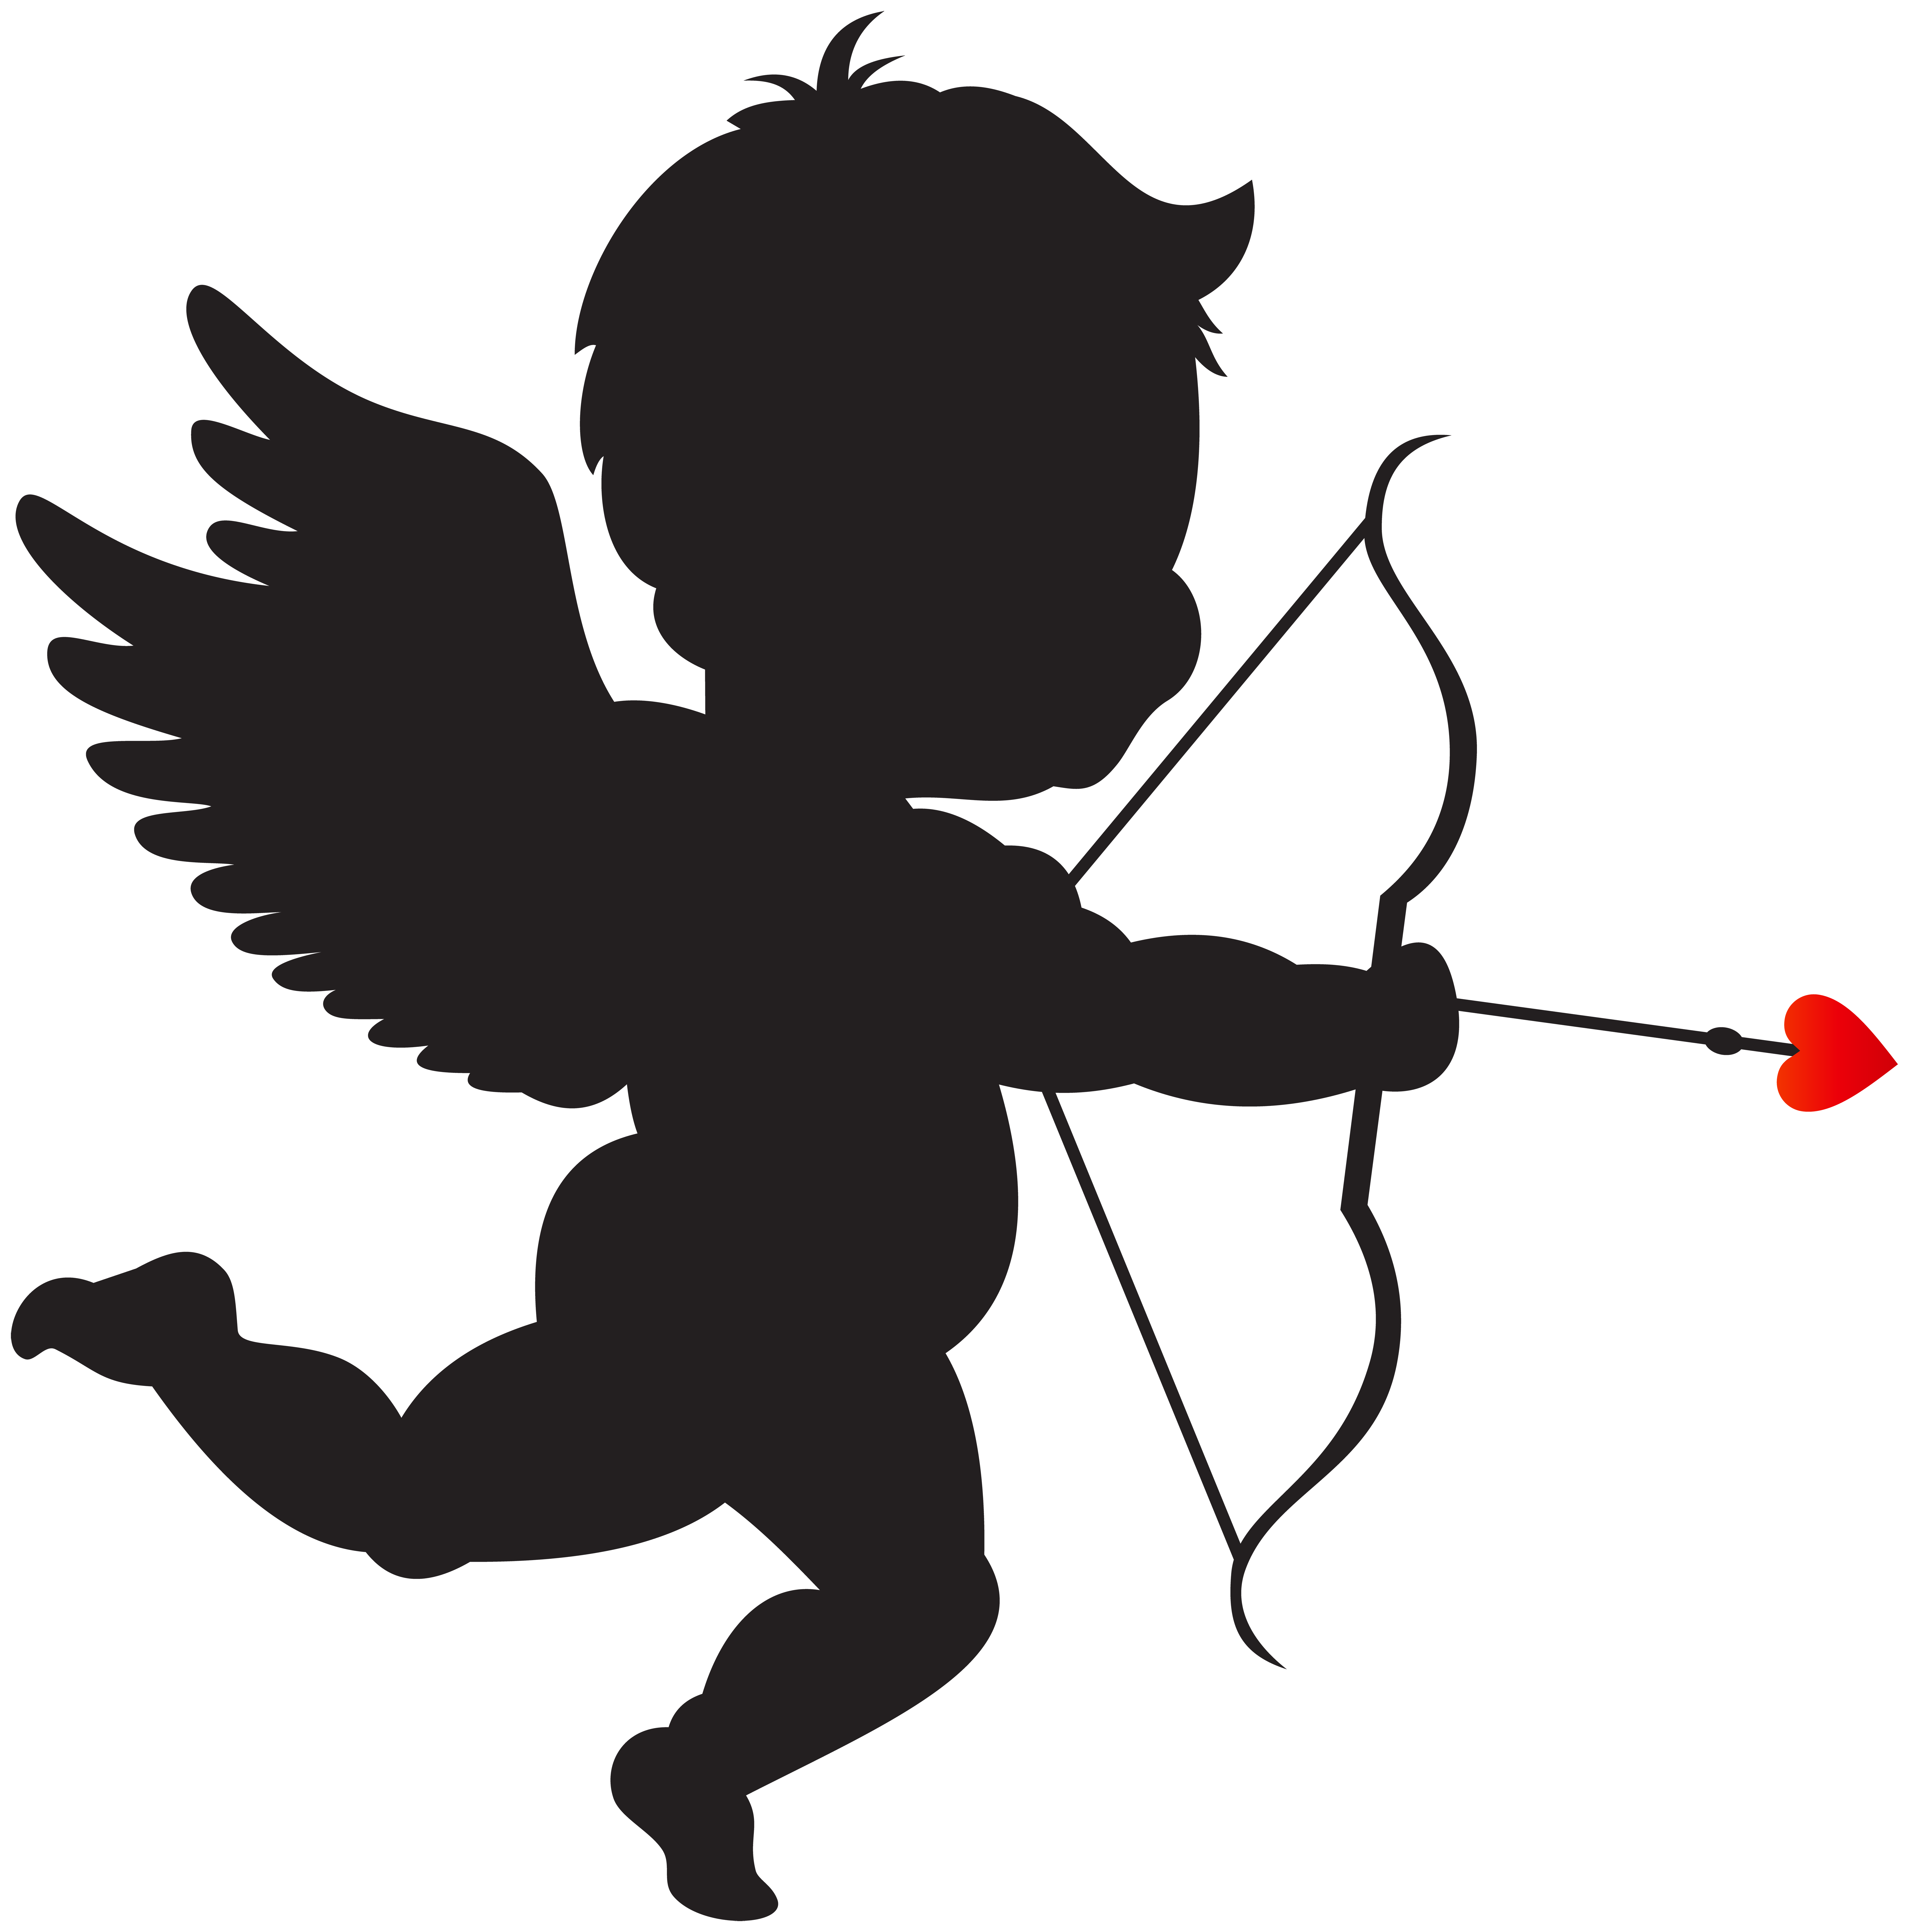 With bow silhouette png. Cupid clipart